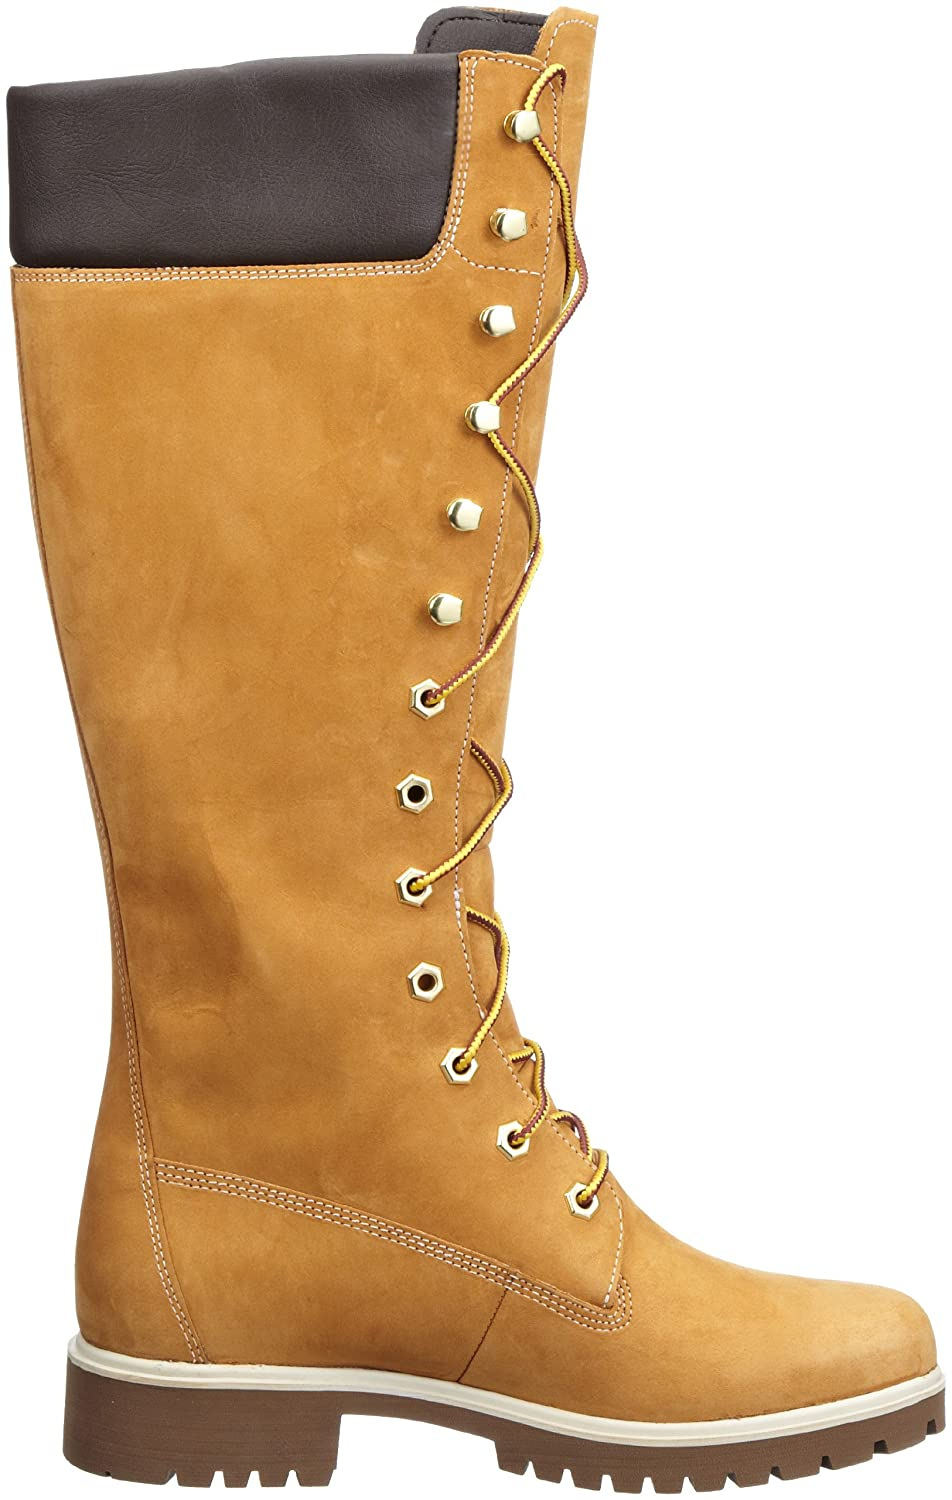 14 Femme Waterproofwide Premium FitBottes Inch Cheville Timberland JcFKl1T